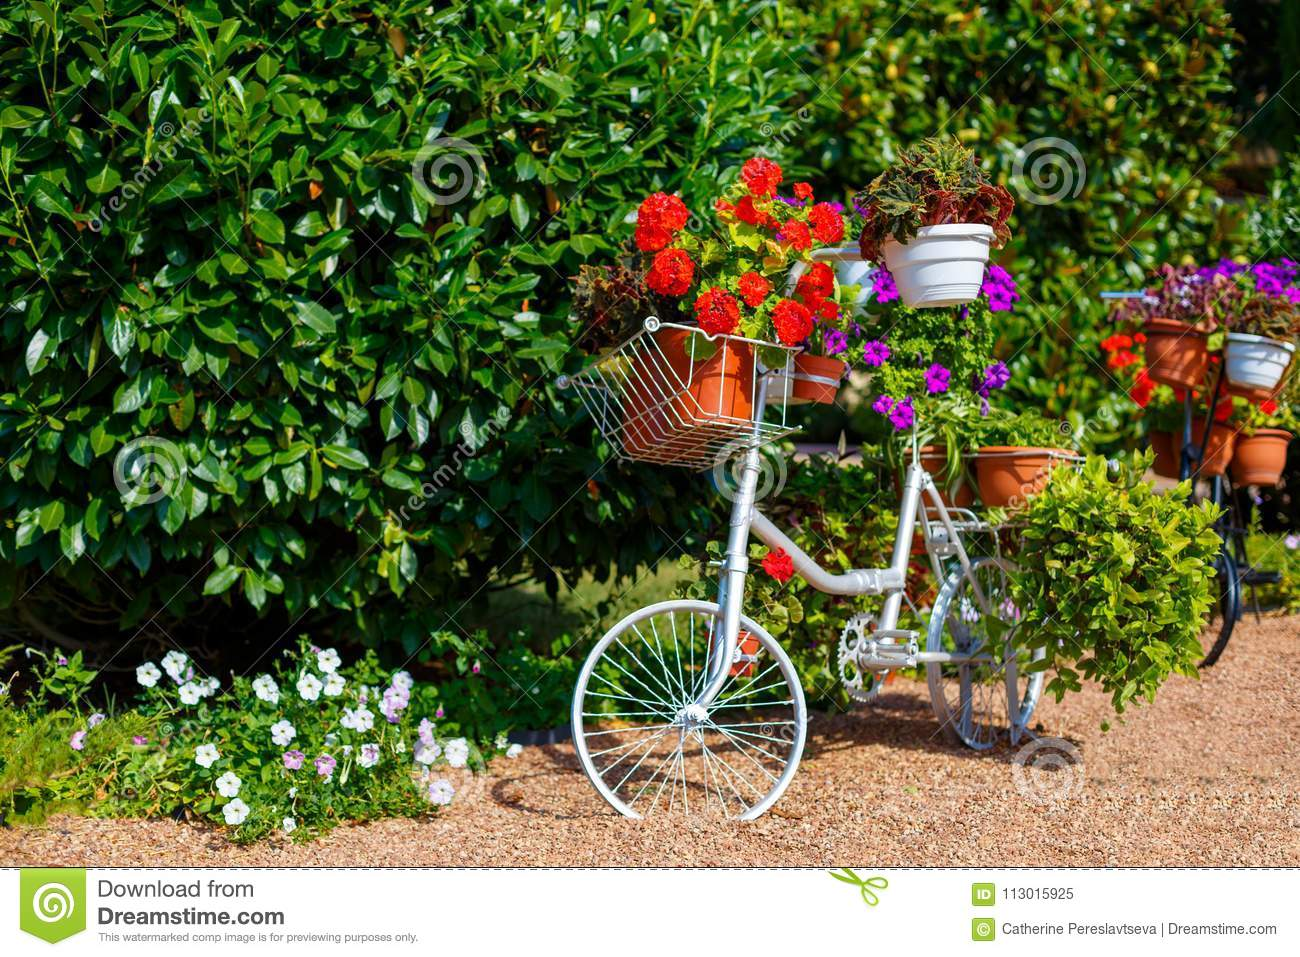 Bike With Flowers As Decor In The Park Stock Image - Image of